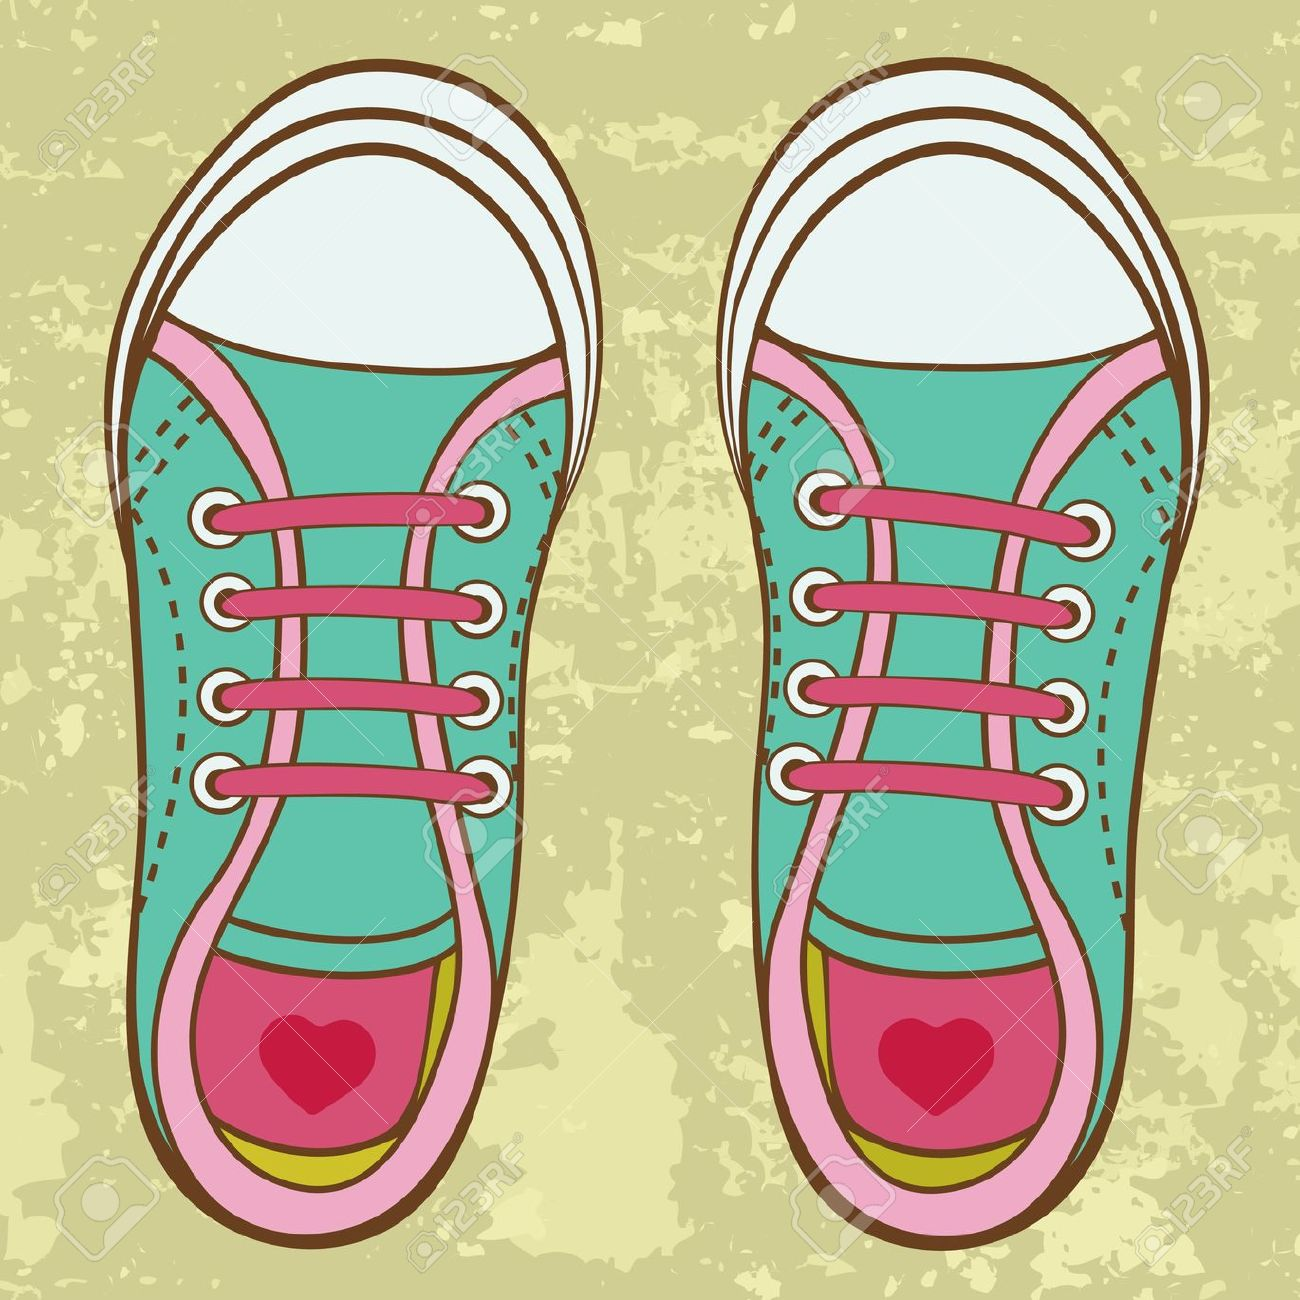 Free Girls Shoe Cliparts, Download Free Clip Art, Free Clip.